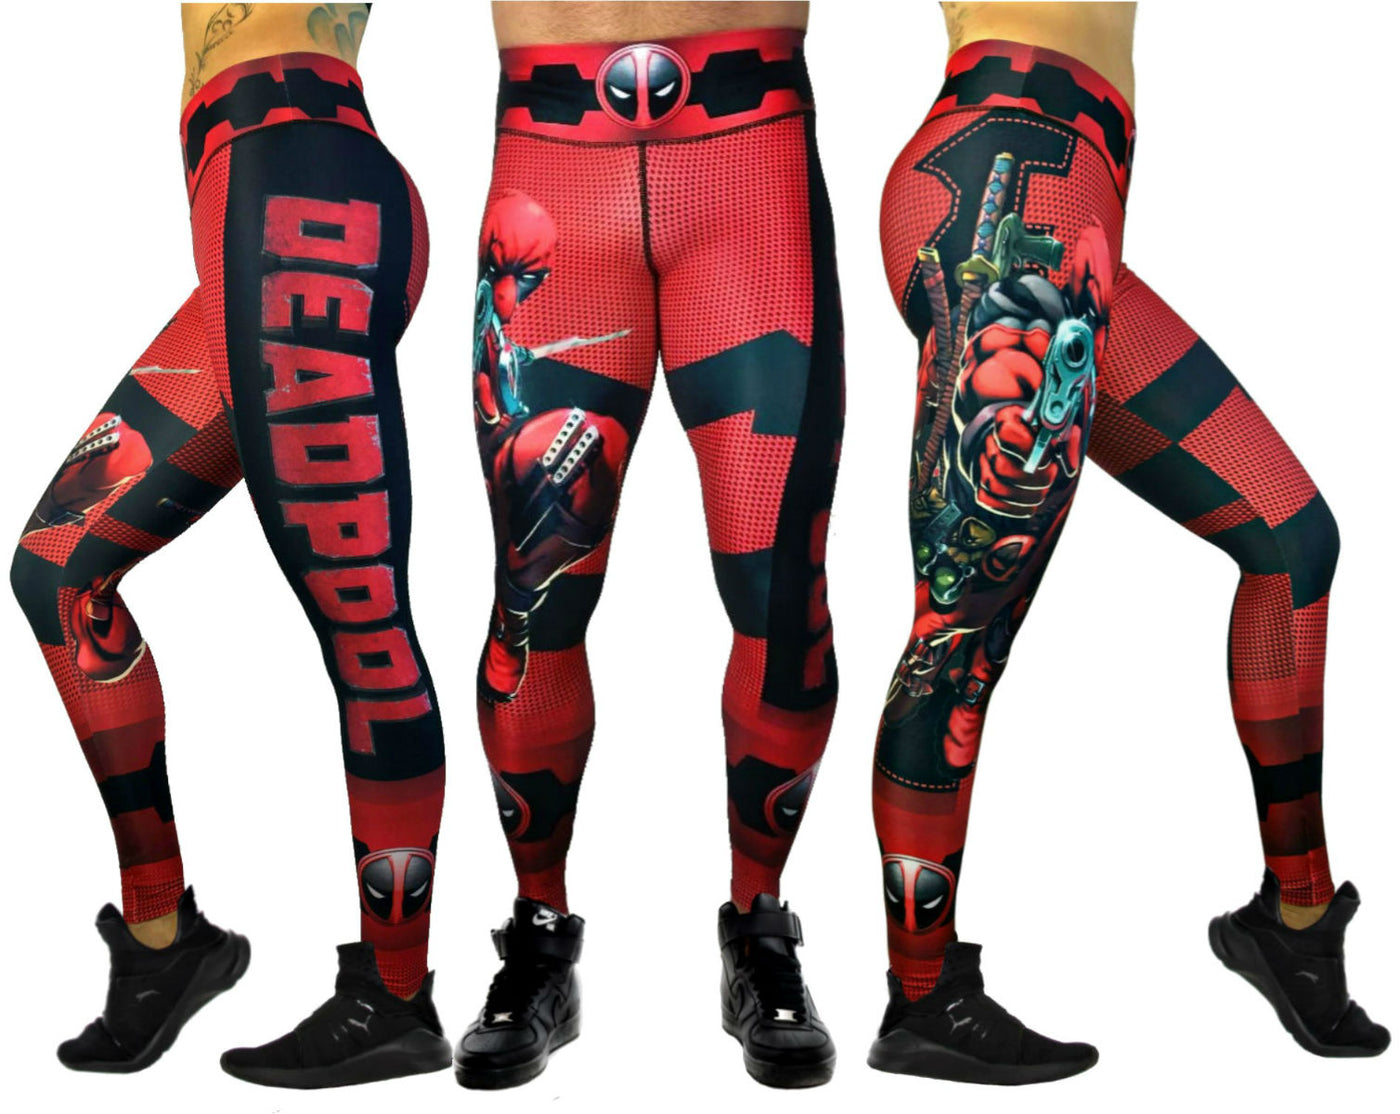 170921dedbf169 Exit 75 Deadpool Red Leggings – His and Hers Athletics